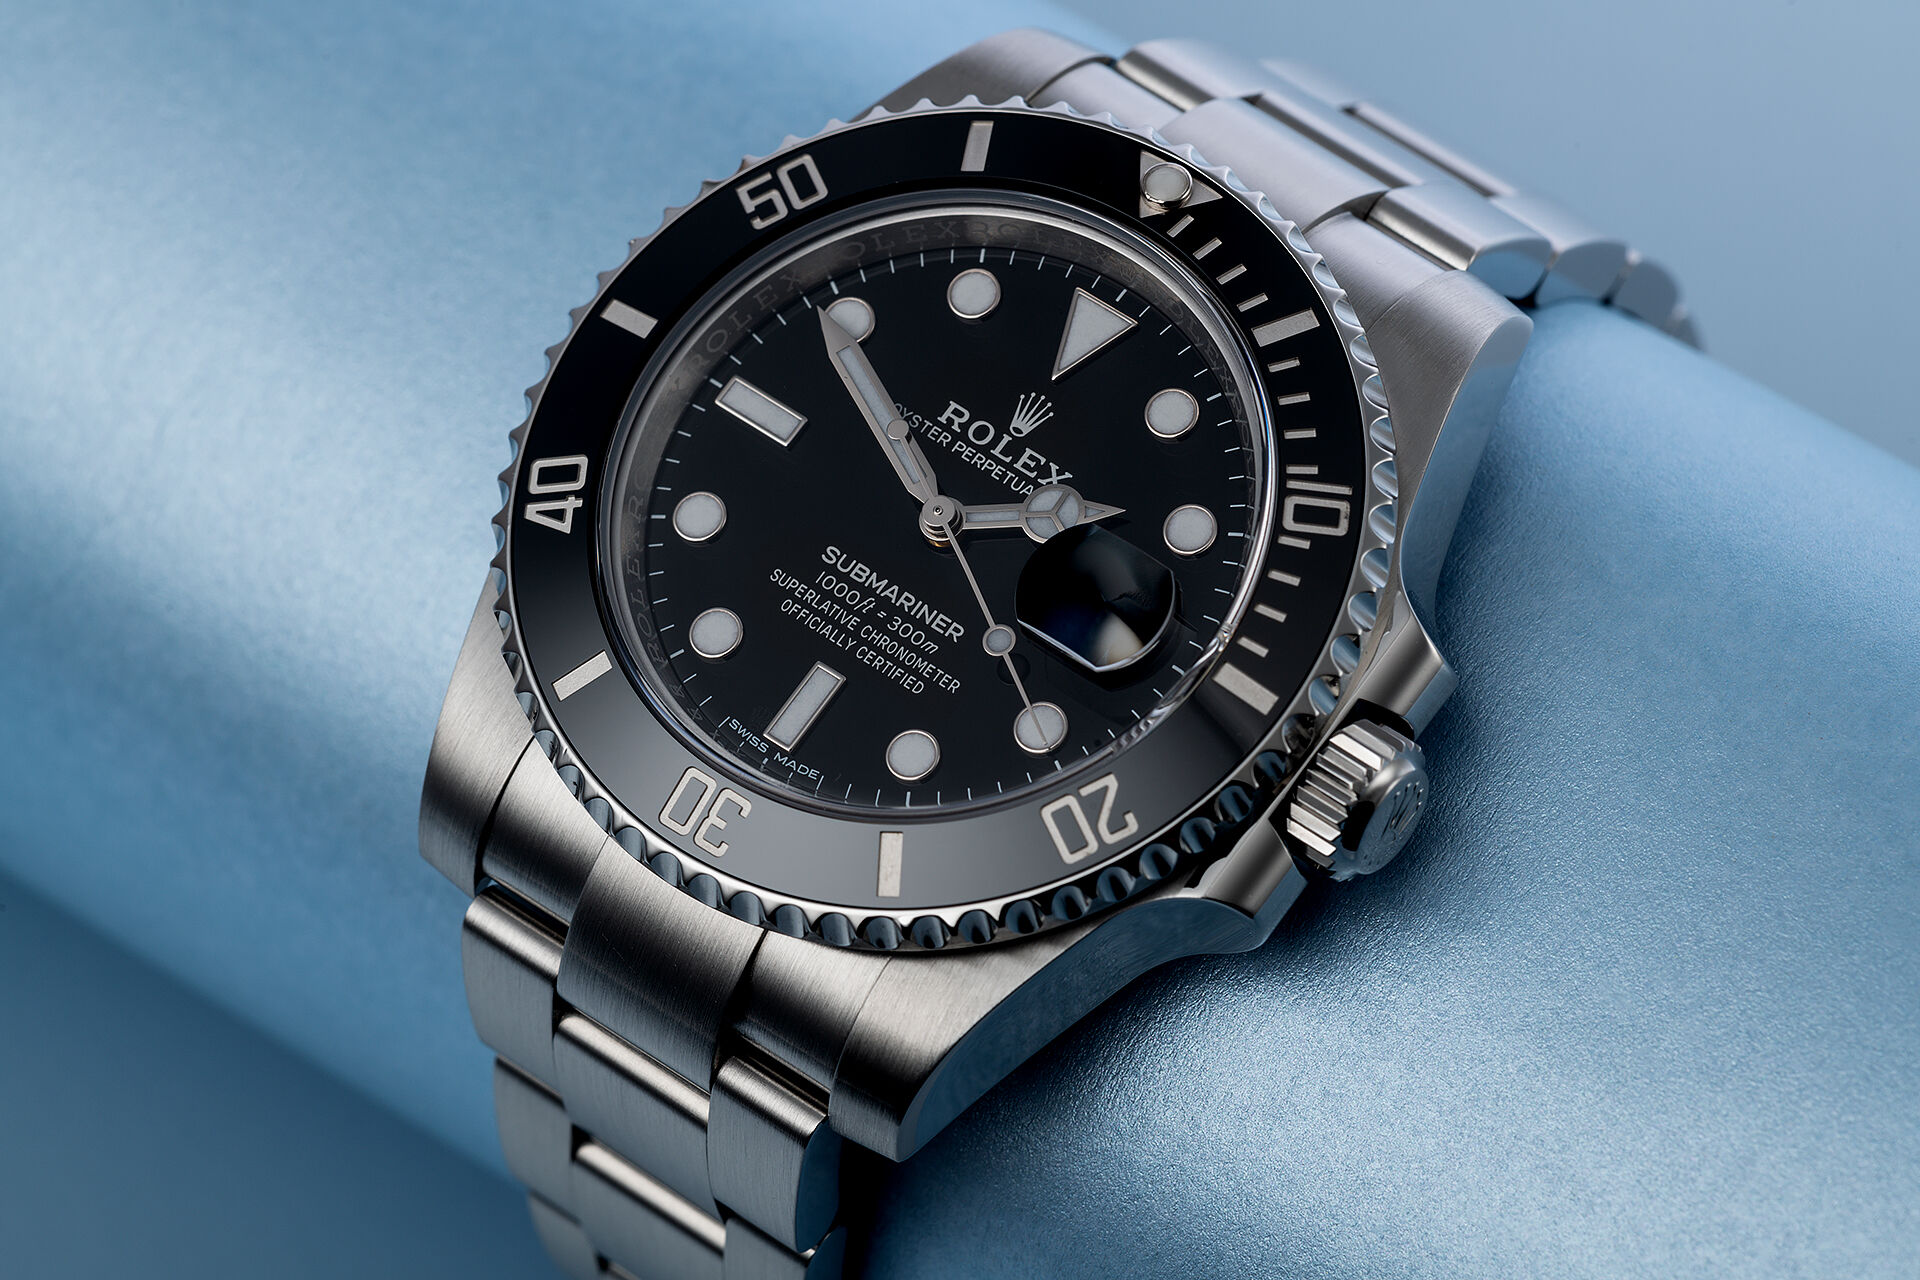 ref 116610LN | Rolex Warranty to Dec 2023 | Rolex Submariner Date